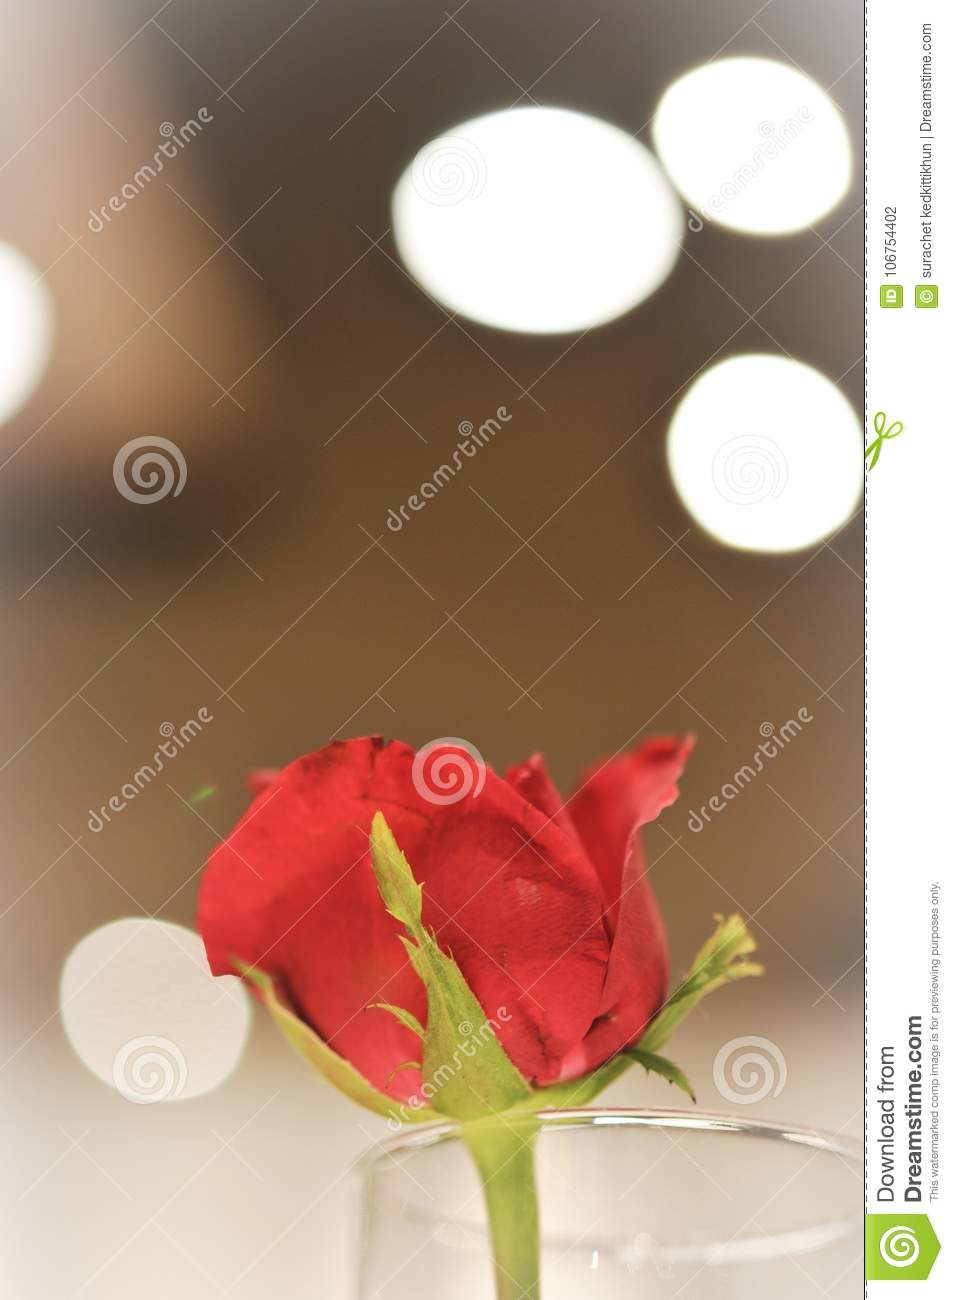 Vintage Card Of Red Flower Rose Over The Bokeh Background